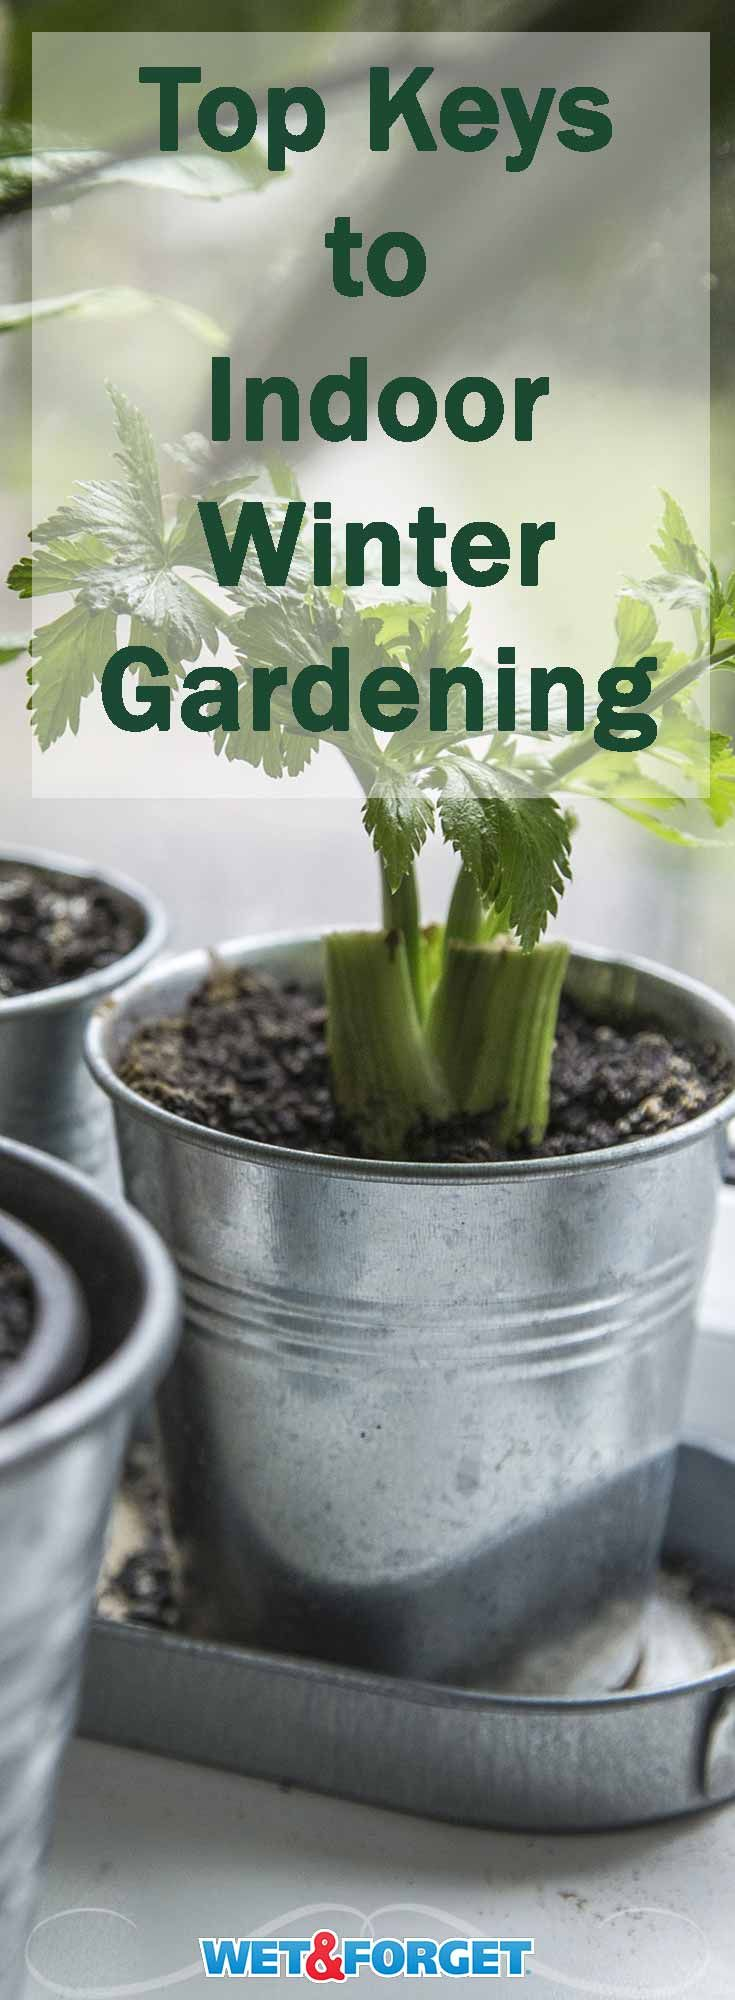 From houseplants to veggies the 5 keys to indoor winter gardening from houseplants to veggies the 5 keys to indoor winter gardening weather key and gardens workwithnaturefo